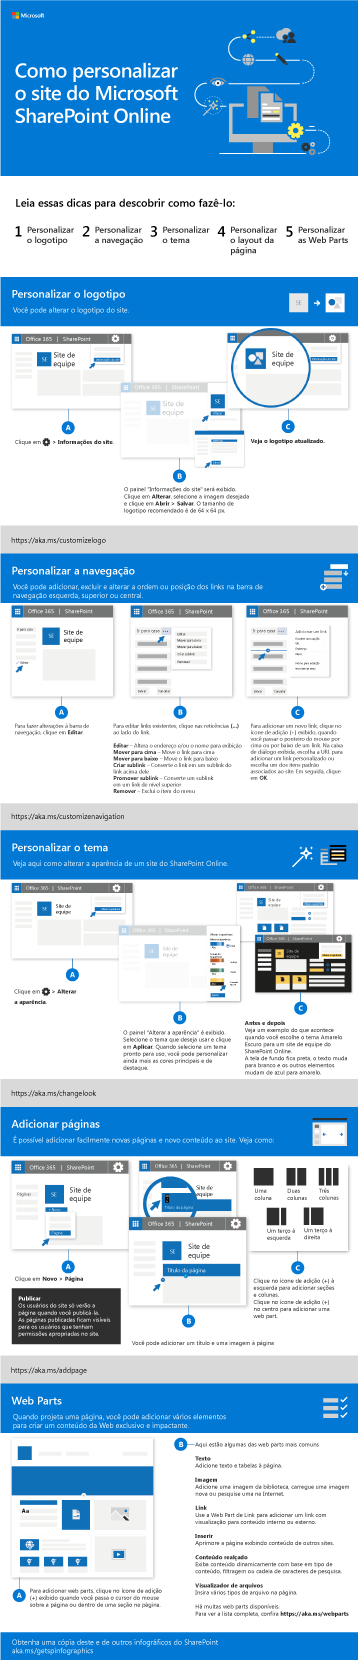 Personalizar o site do SharePoint